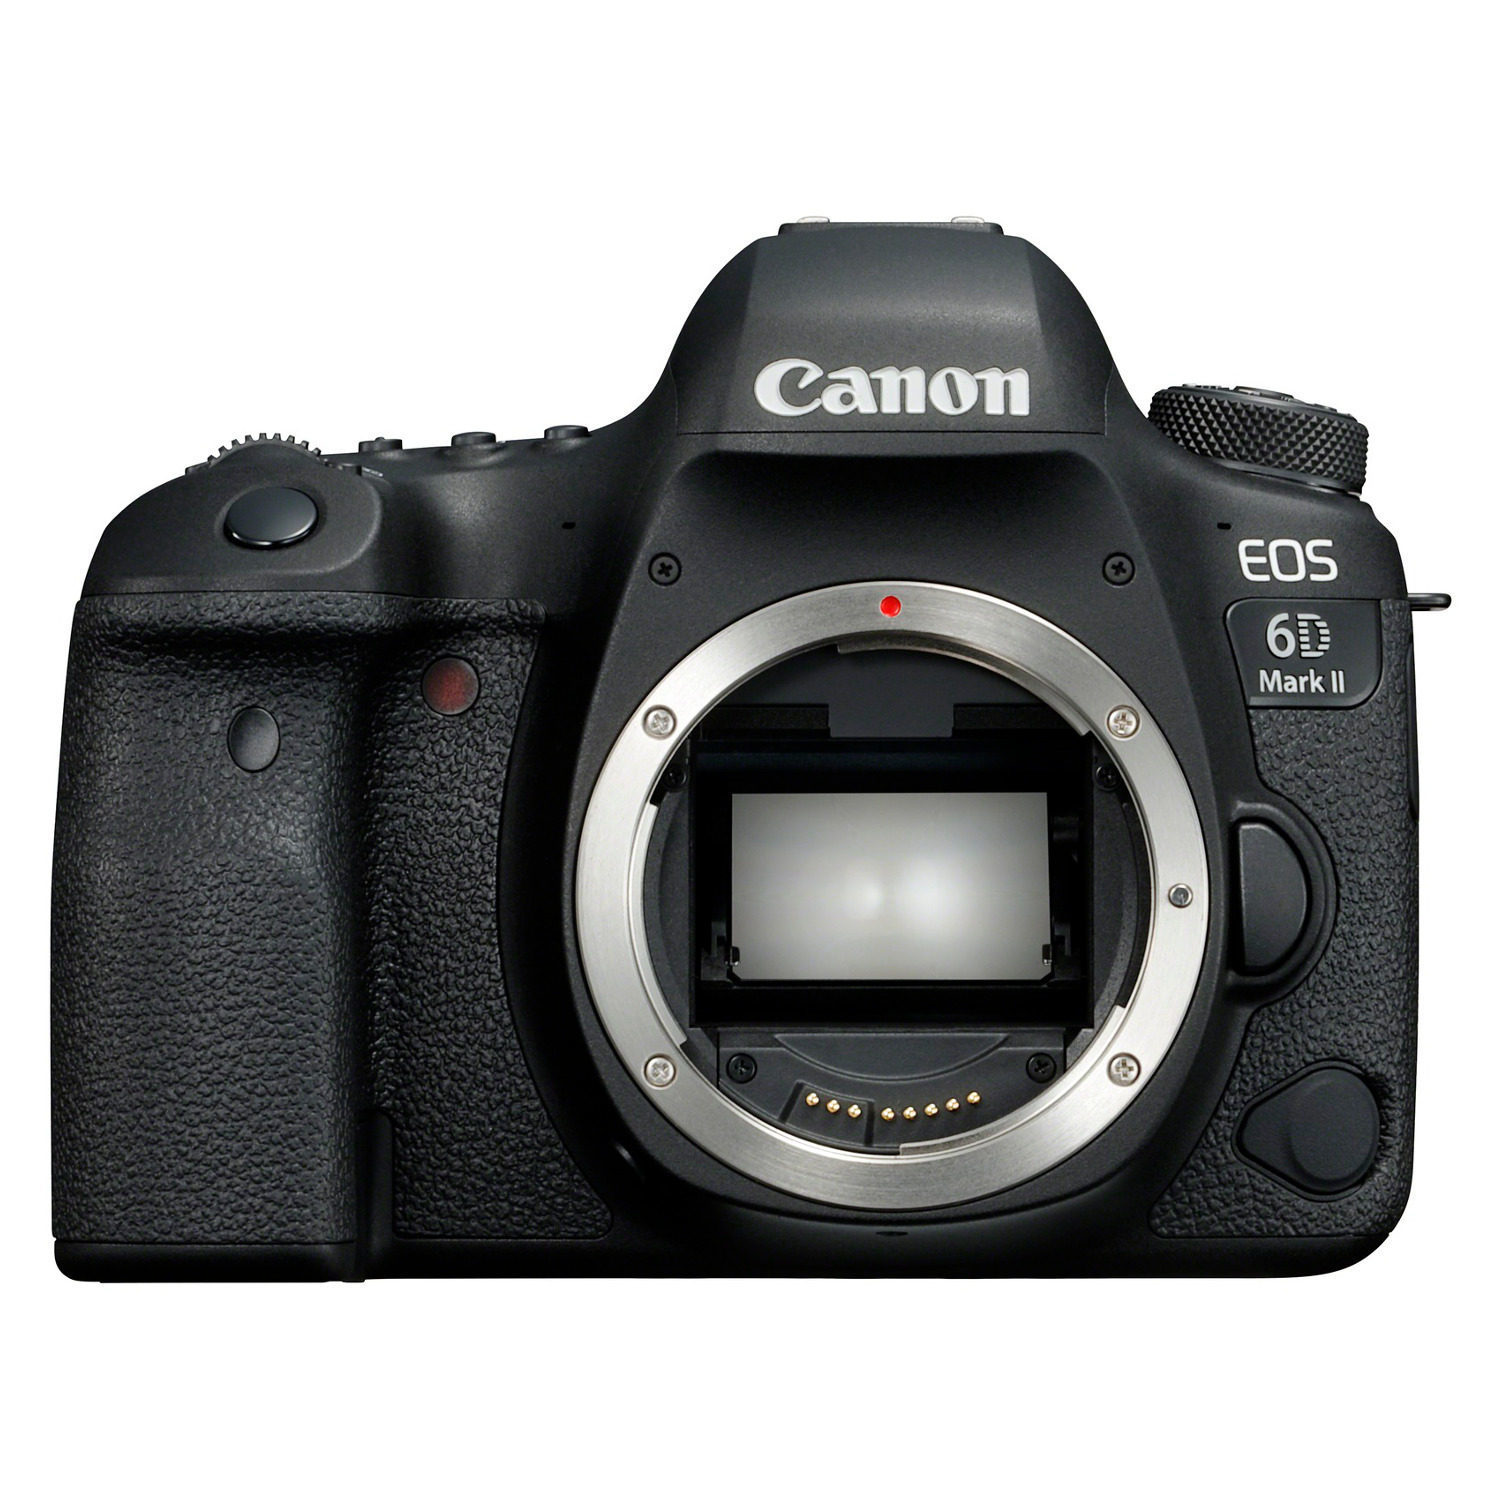 Canon EOS 6D Mark II DSLR Body - Demomodel